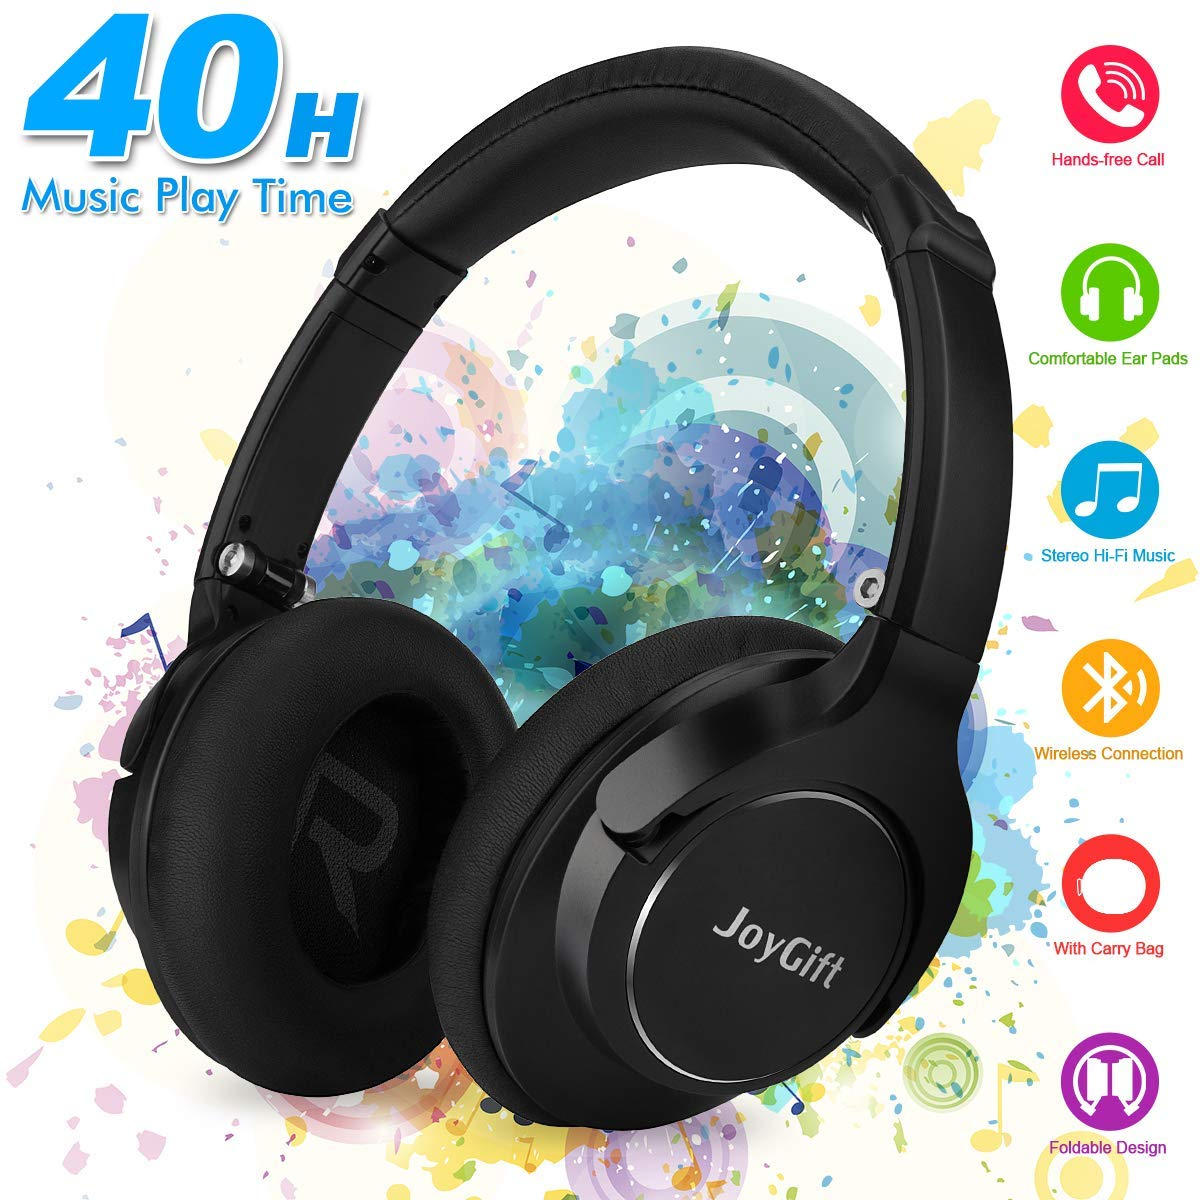 Bluetooth Headphones,Wireless Headphones Over Ear Headphones,HiFi Stereo Bluetooth Headset with Microphone/Wired Mode,Foldable,Soft Memory-Protein Earpads,40-Hour Play Time for PC/Cell Phones Black